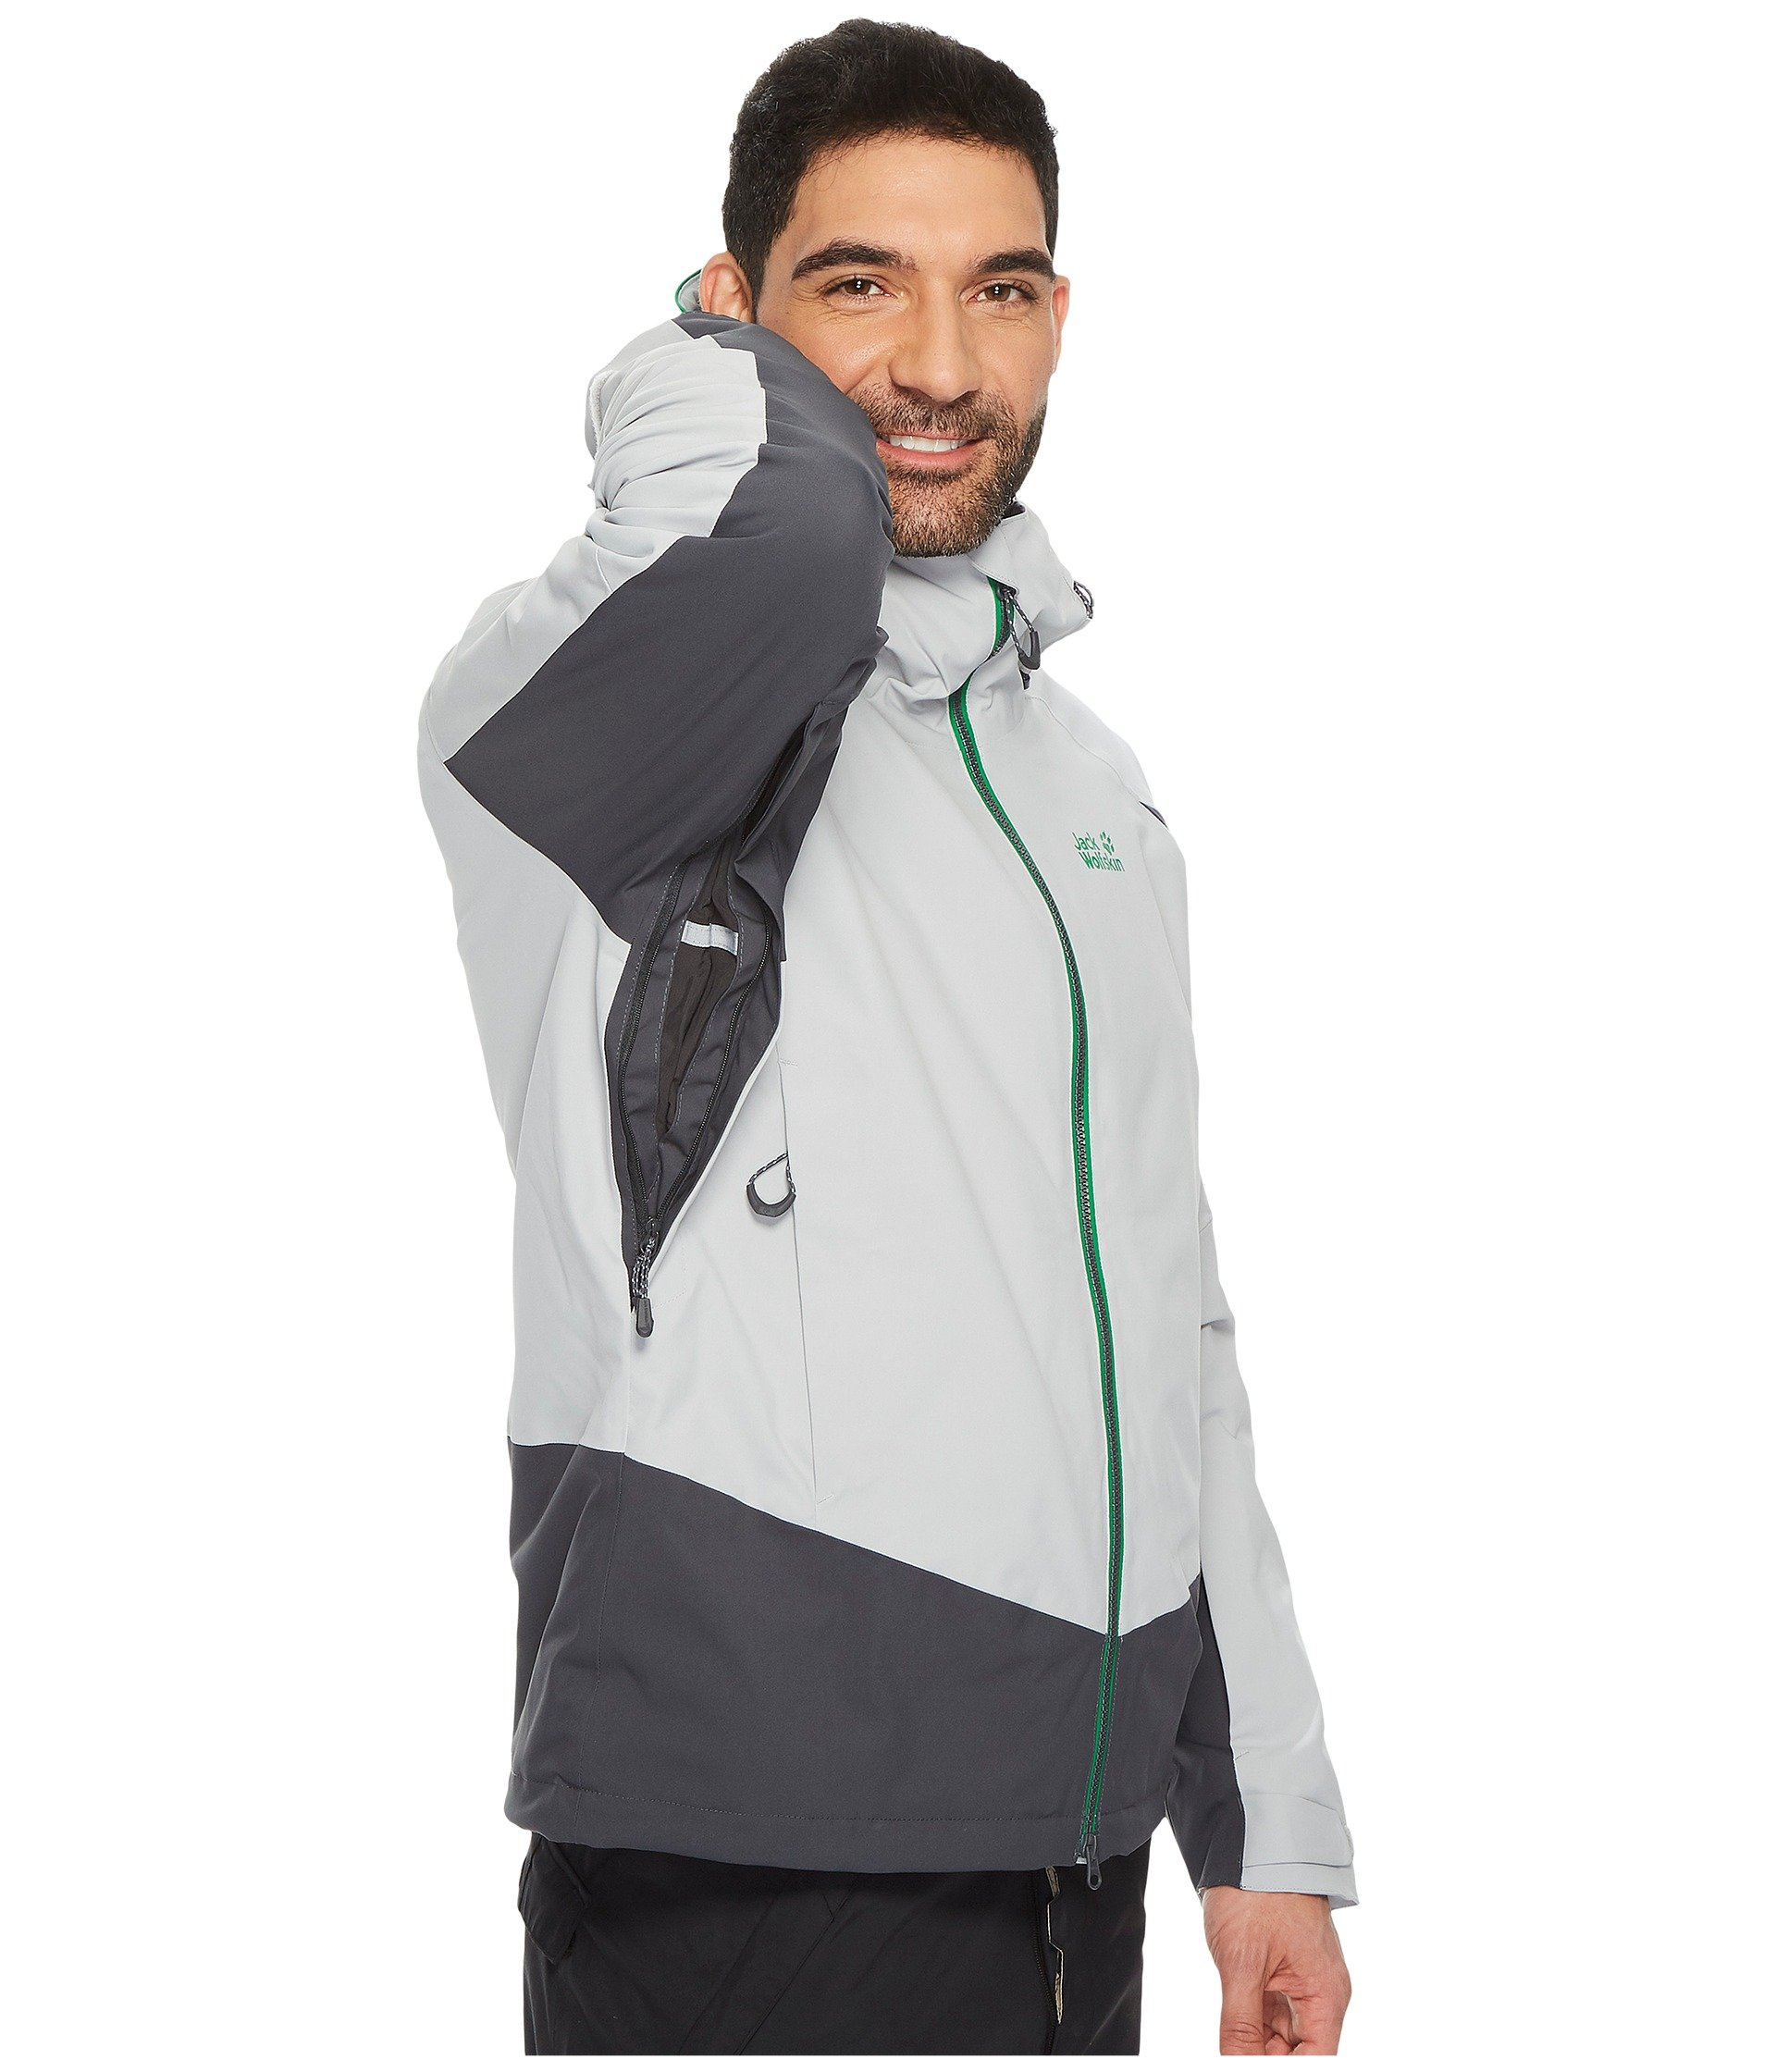 Jack Wolfskin Exolight Base Jacket at Zappos.com